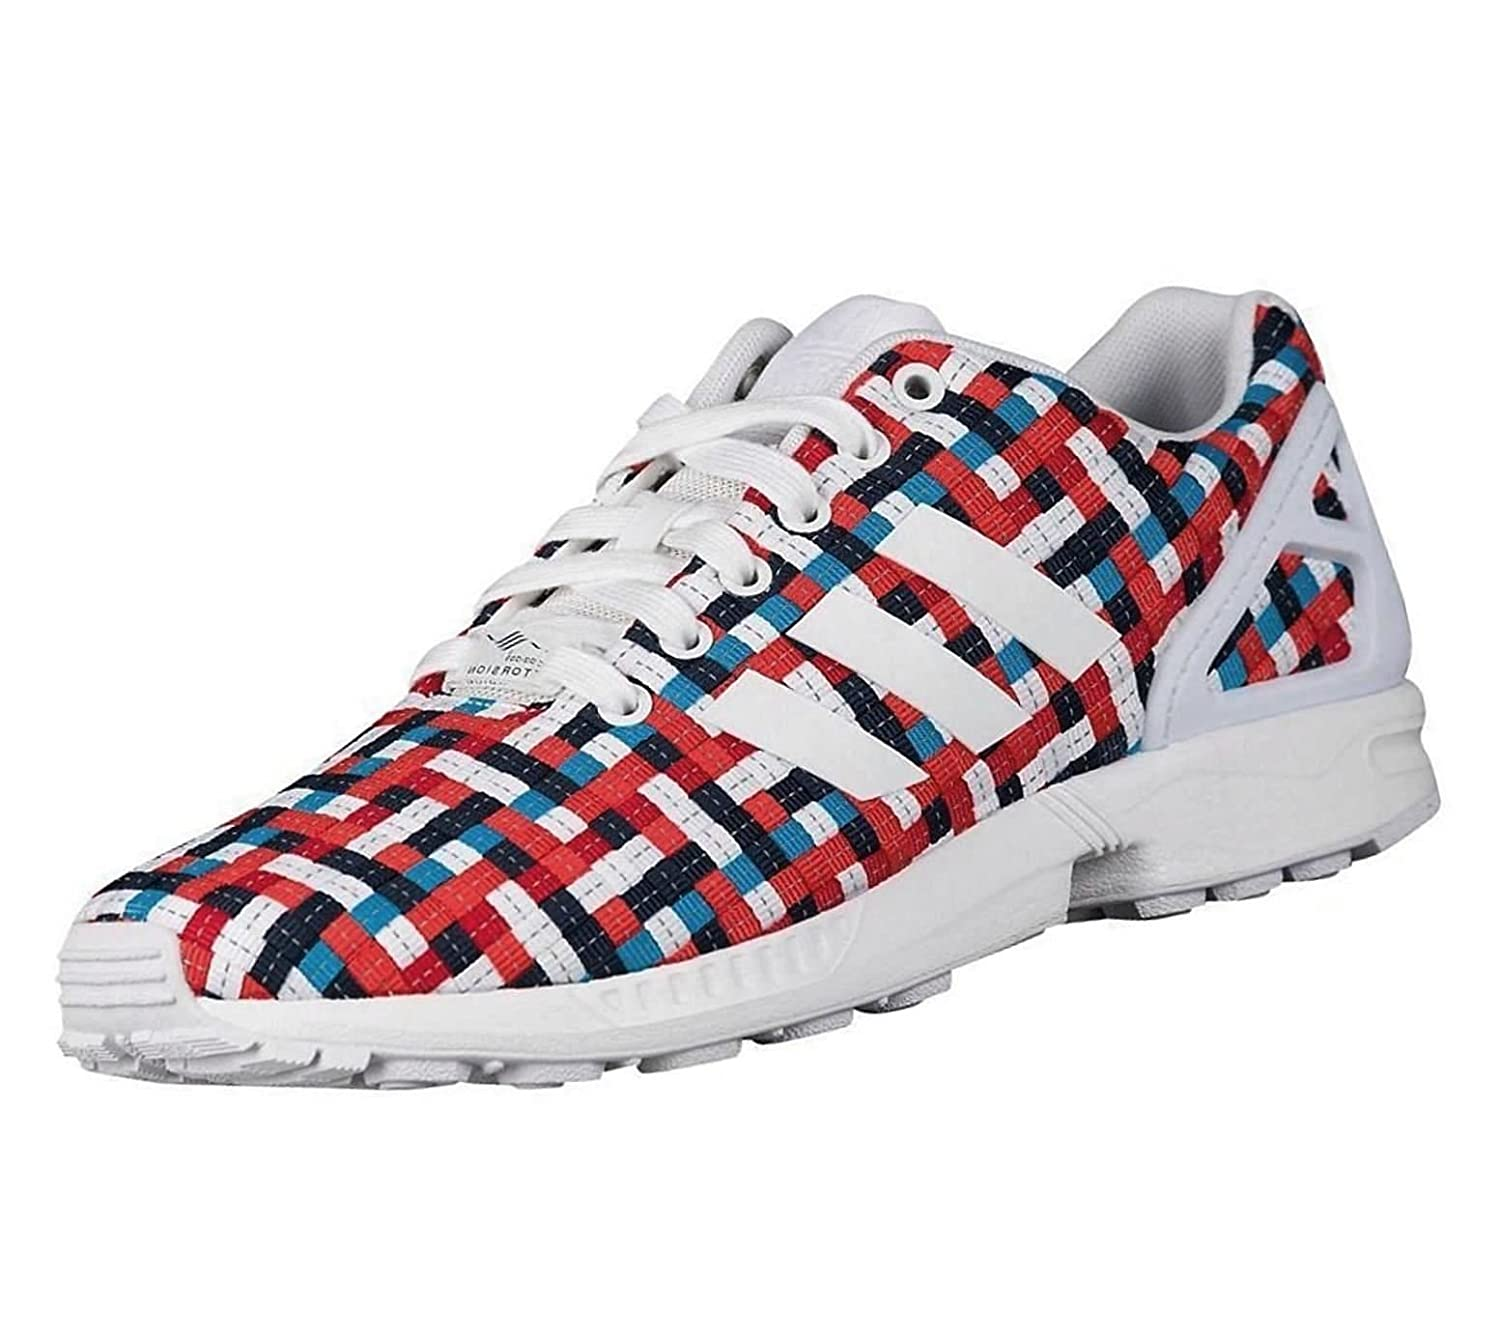 premium selection ad6b2 6d34d Amazon.com | adidas Originals Men's ZX Flux Woven Sneakers ...